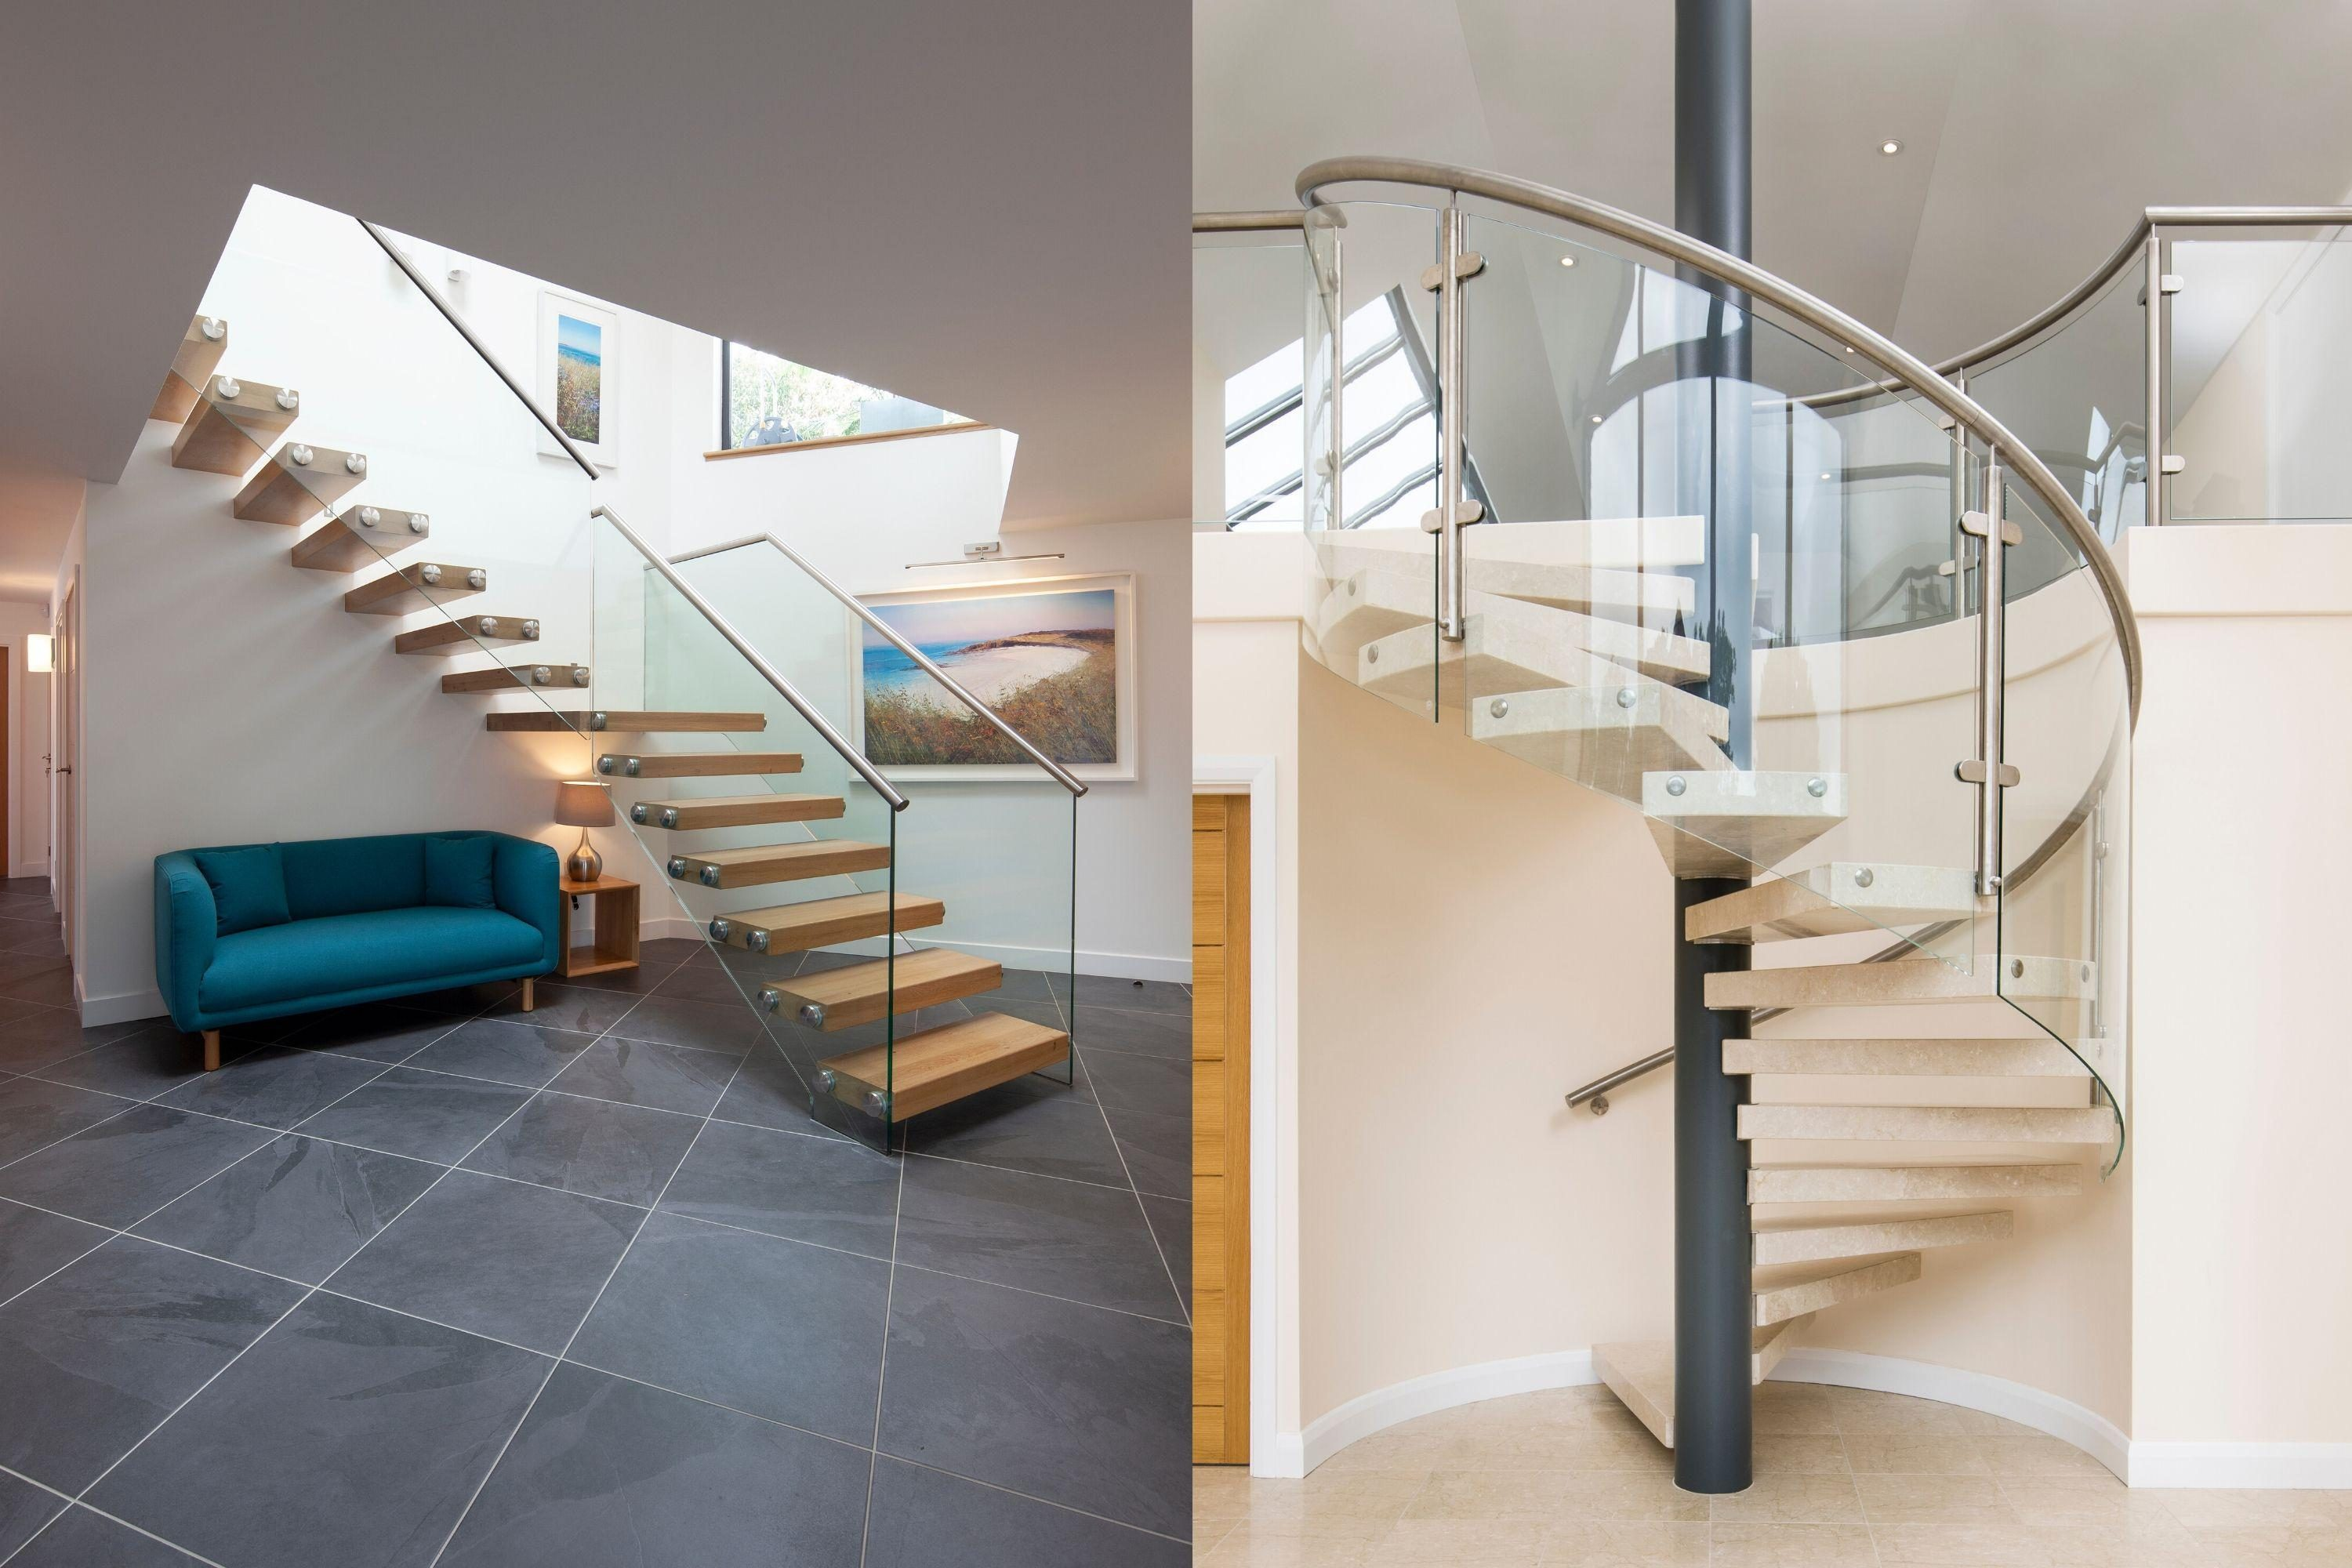 Glass balustrade on floating stairs